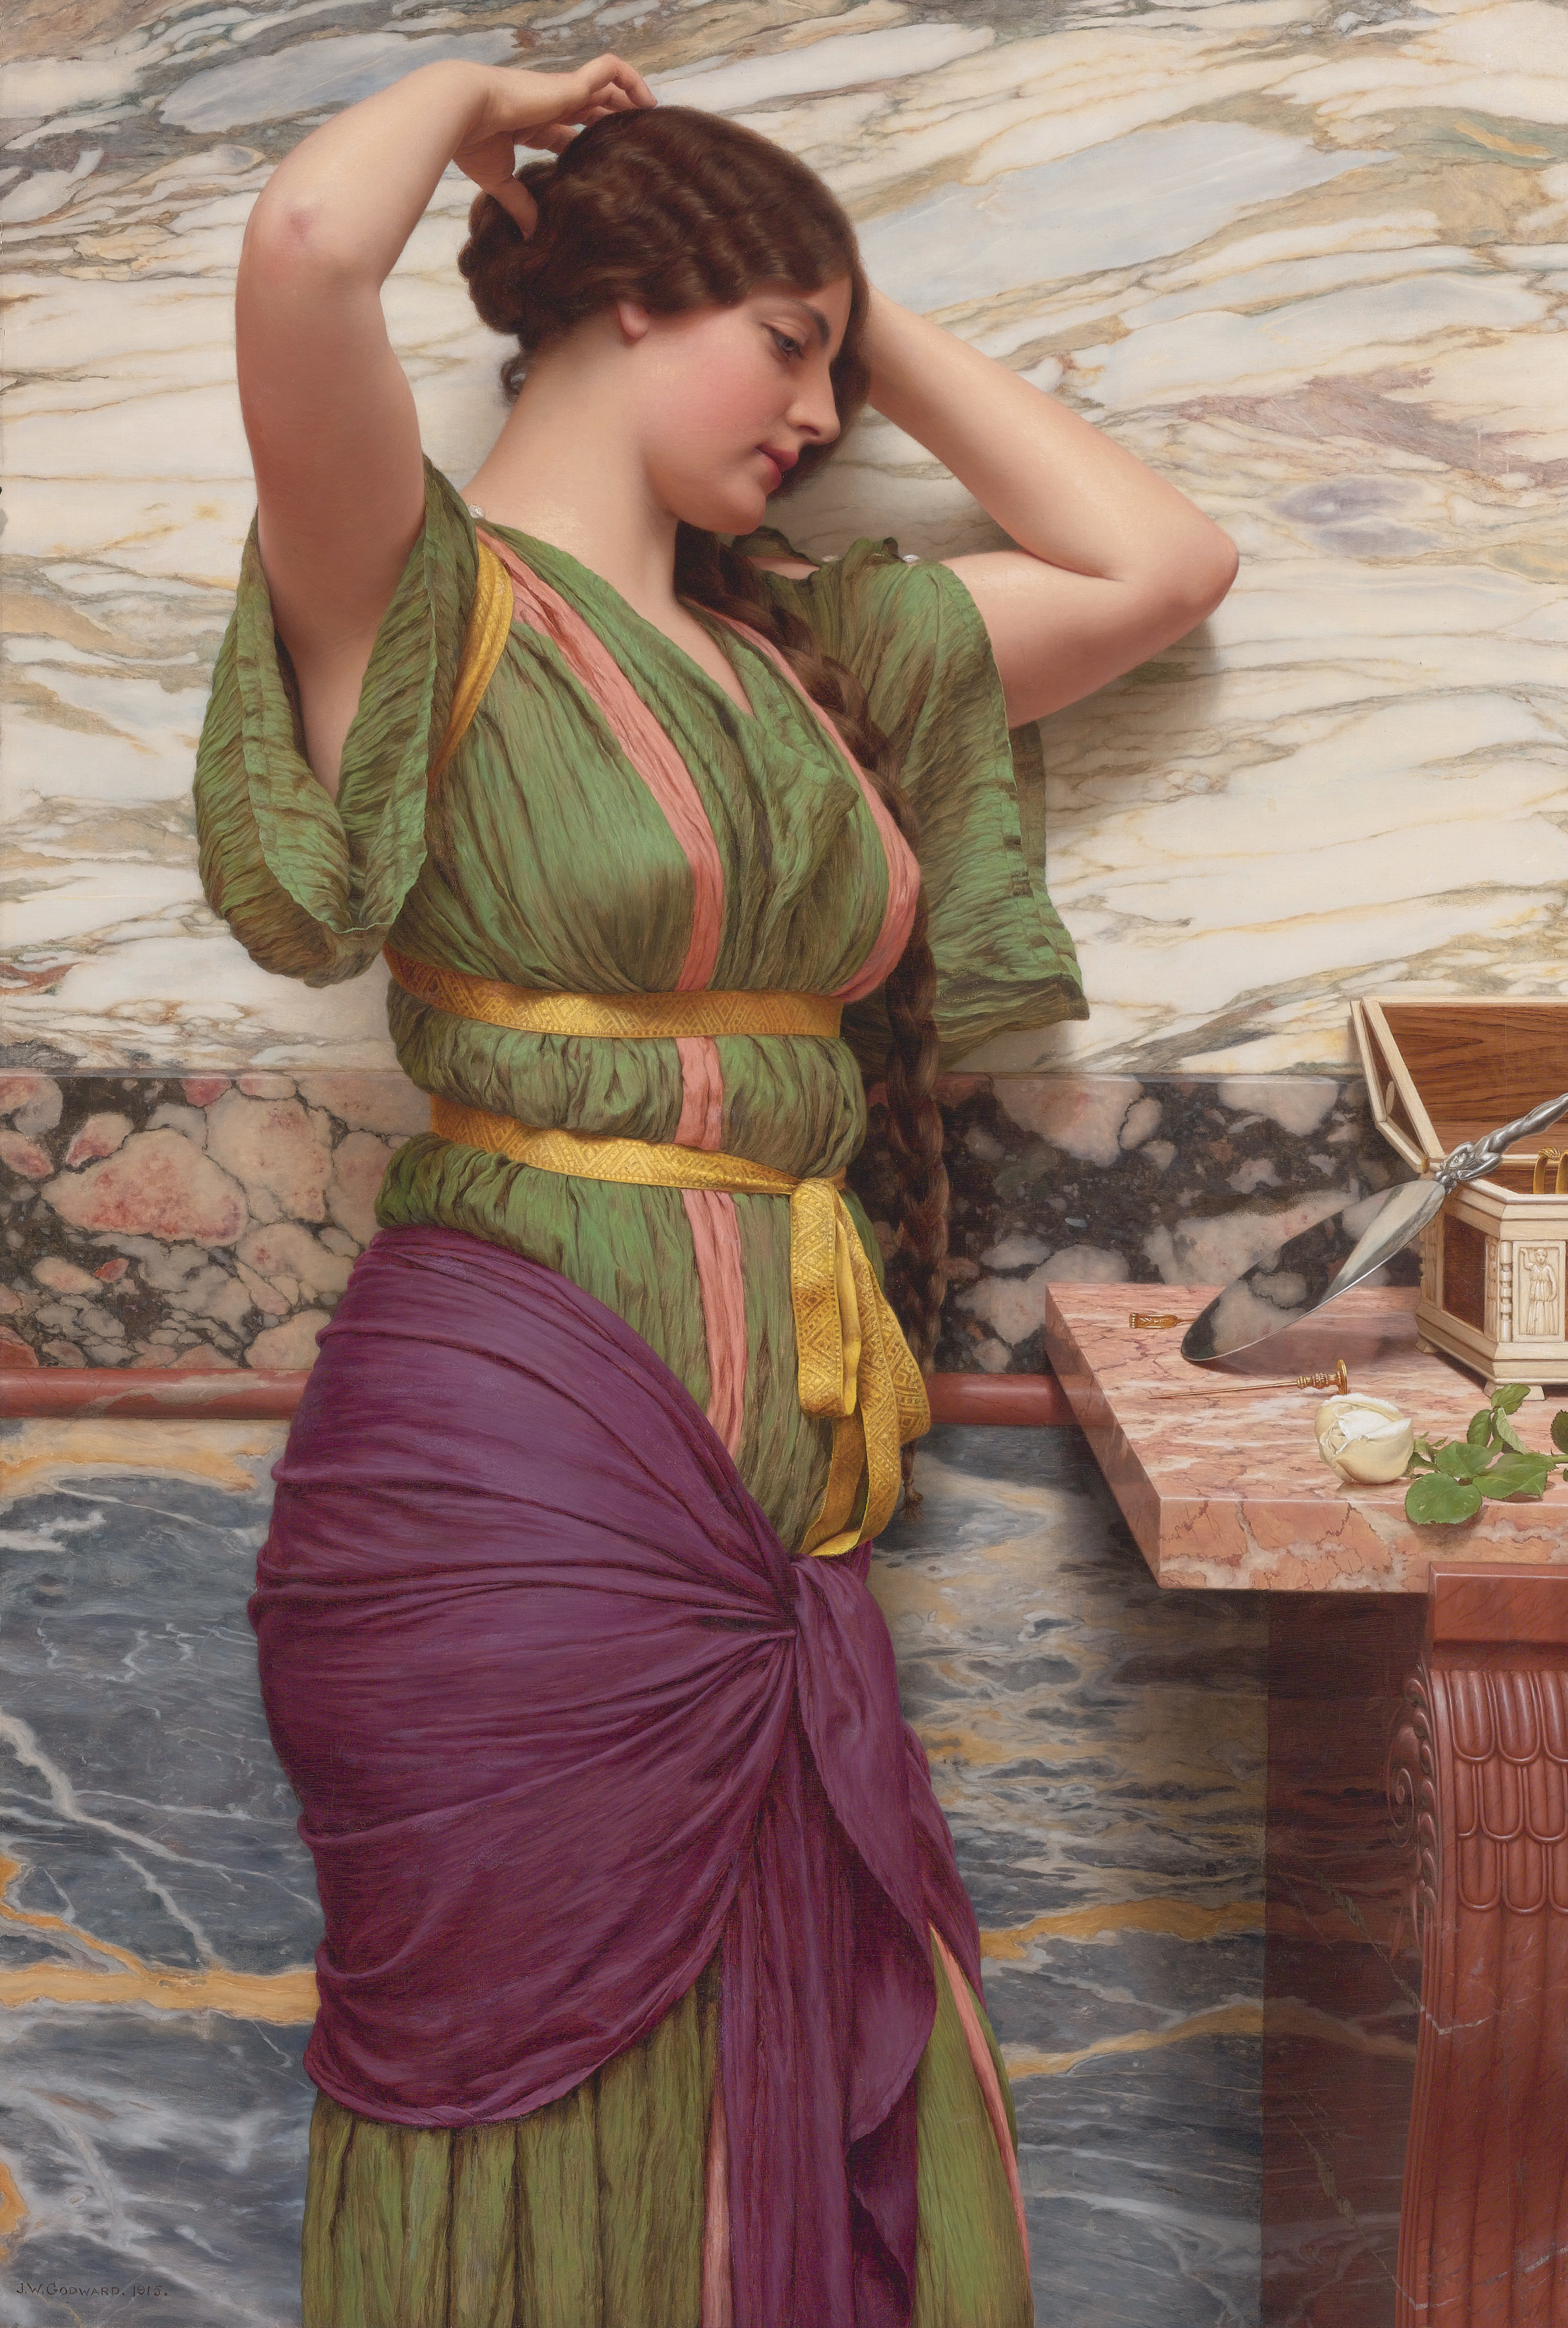 Stunning Image of John William Godward and A Fair Reflection in 1915